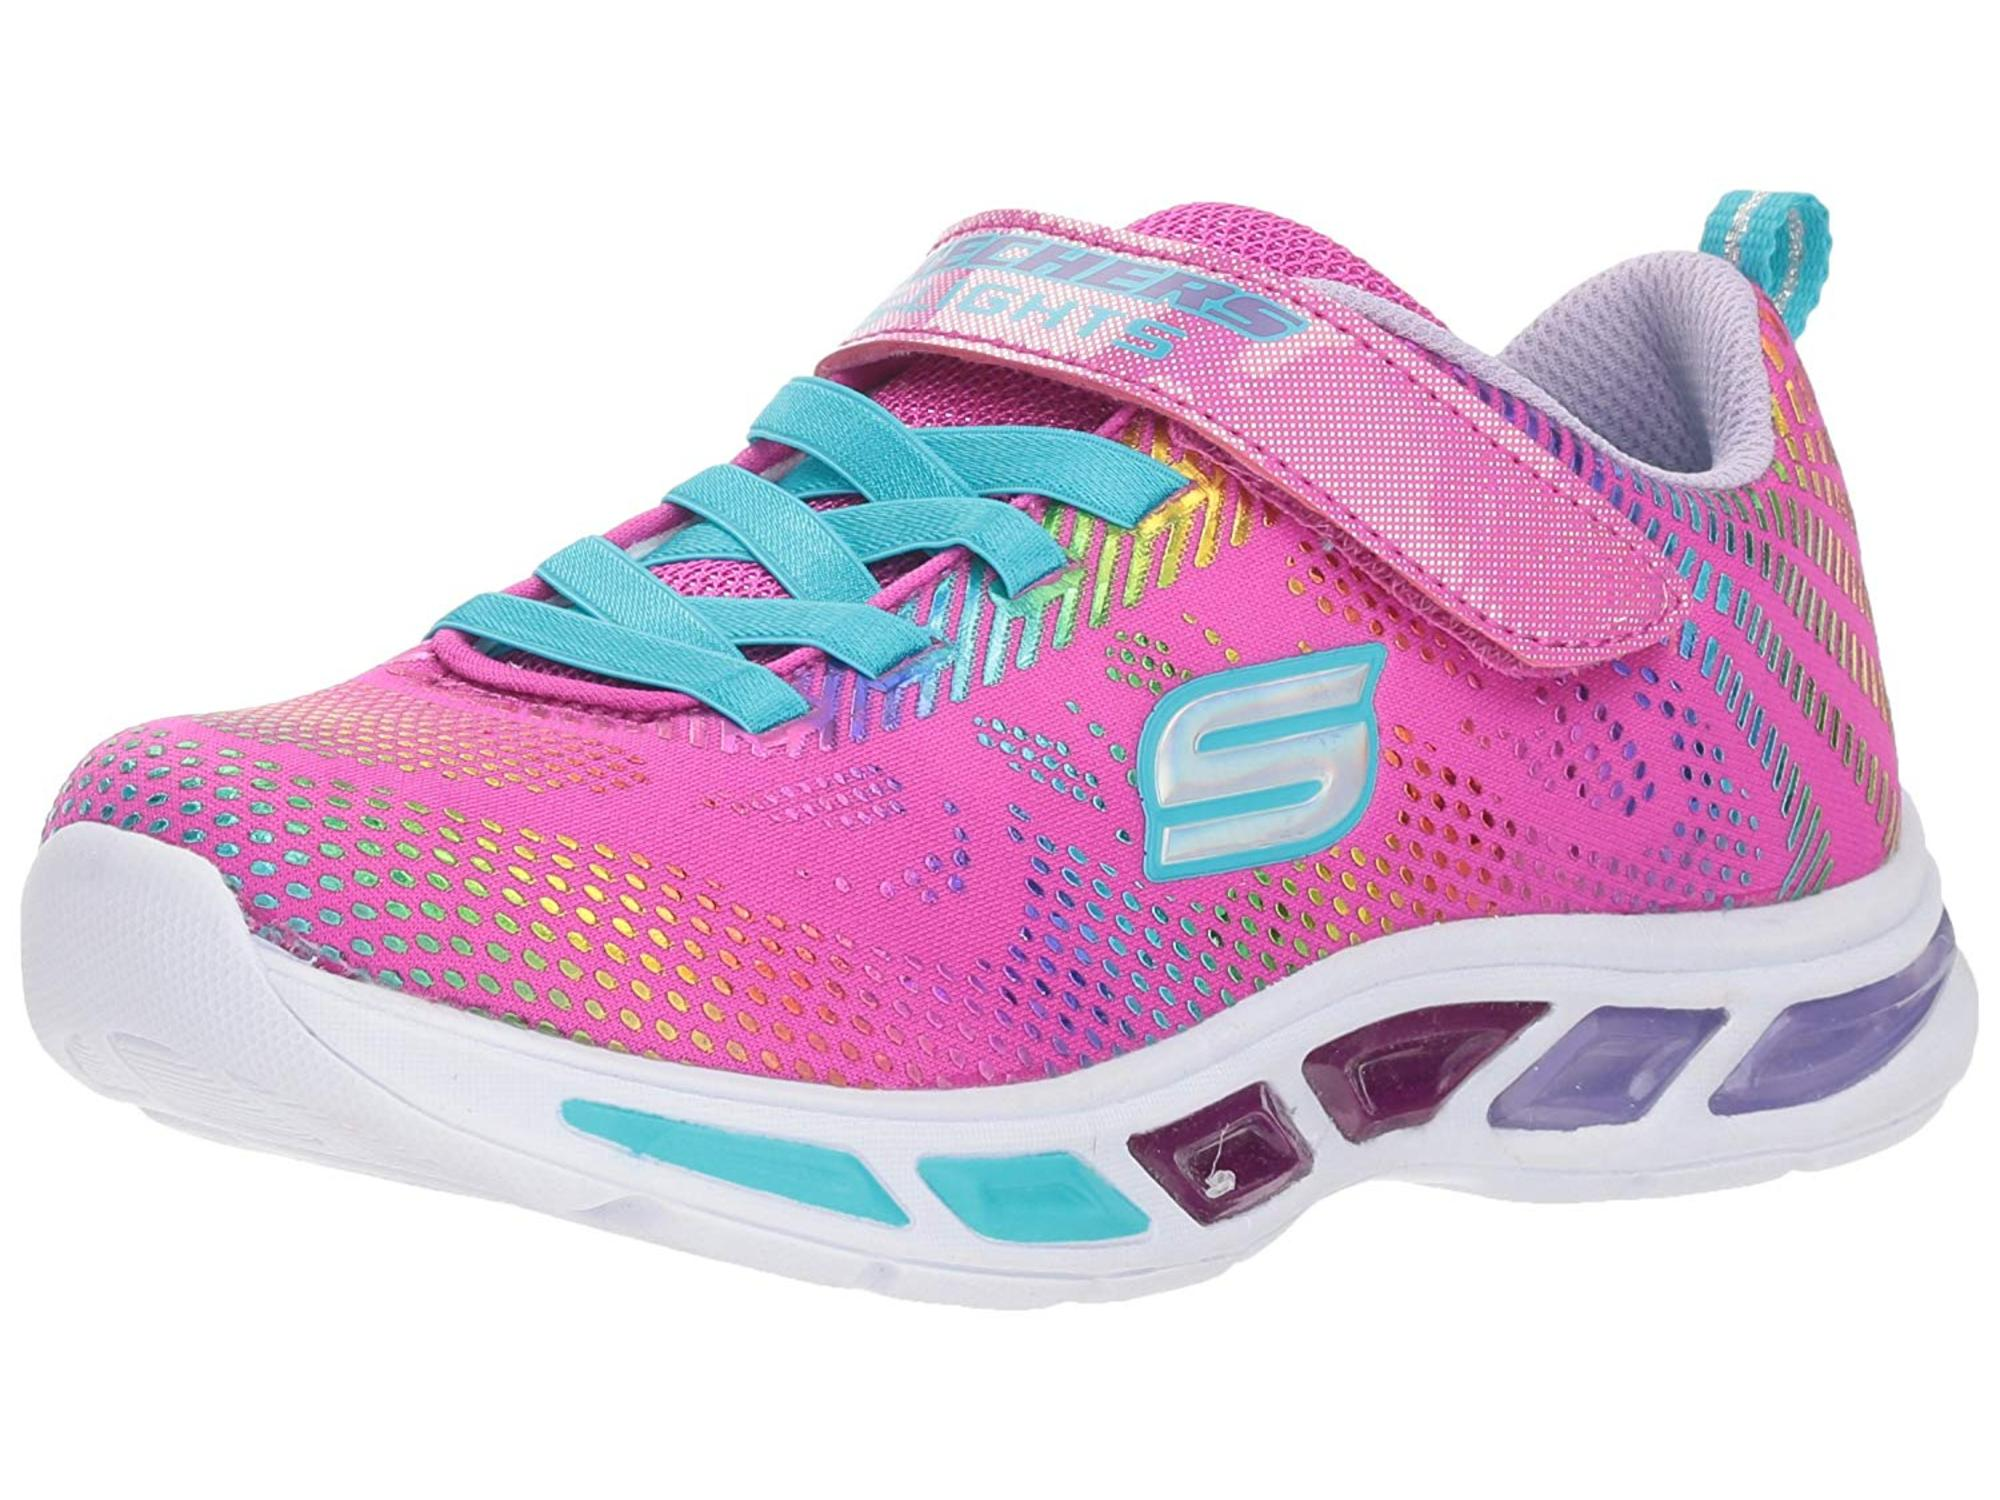 new SKETCHERS light up tennis shoes  2 3 4 5 LITEBEAMS